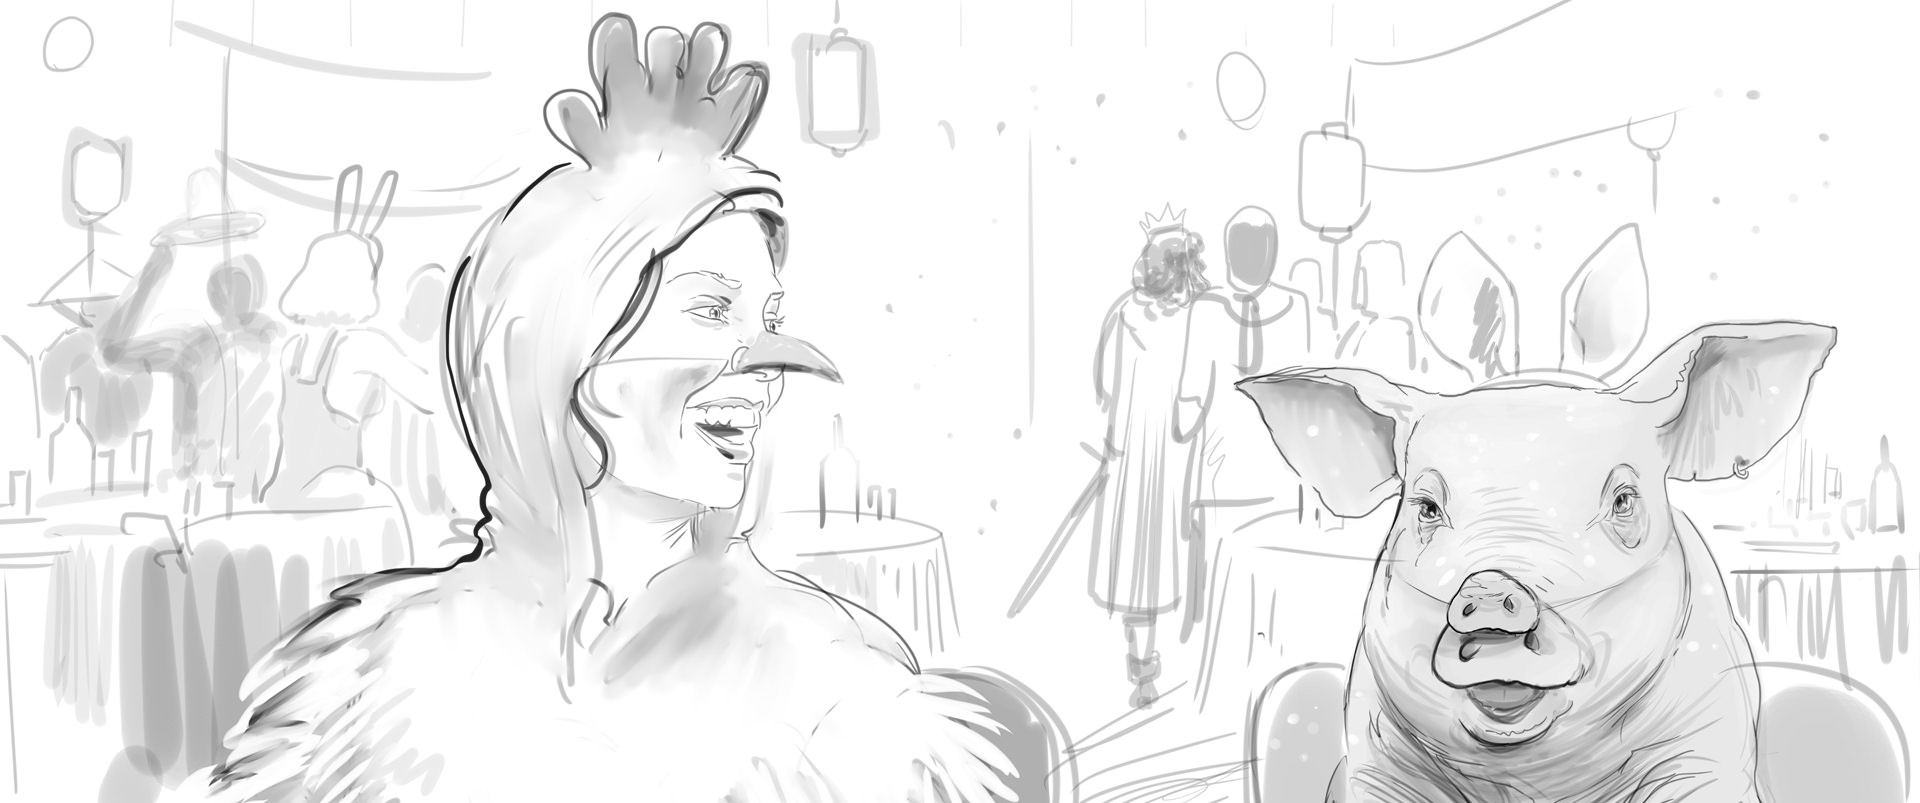 Lidl Vis TV Commercial storyboard 09